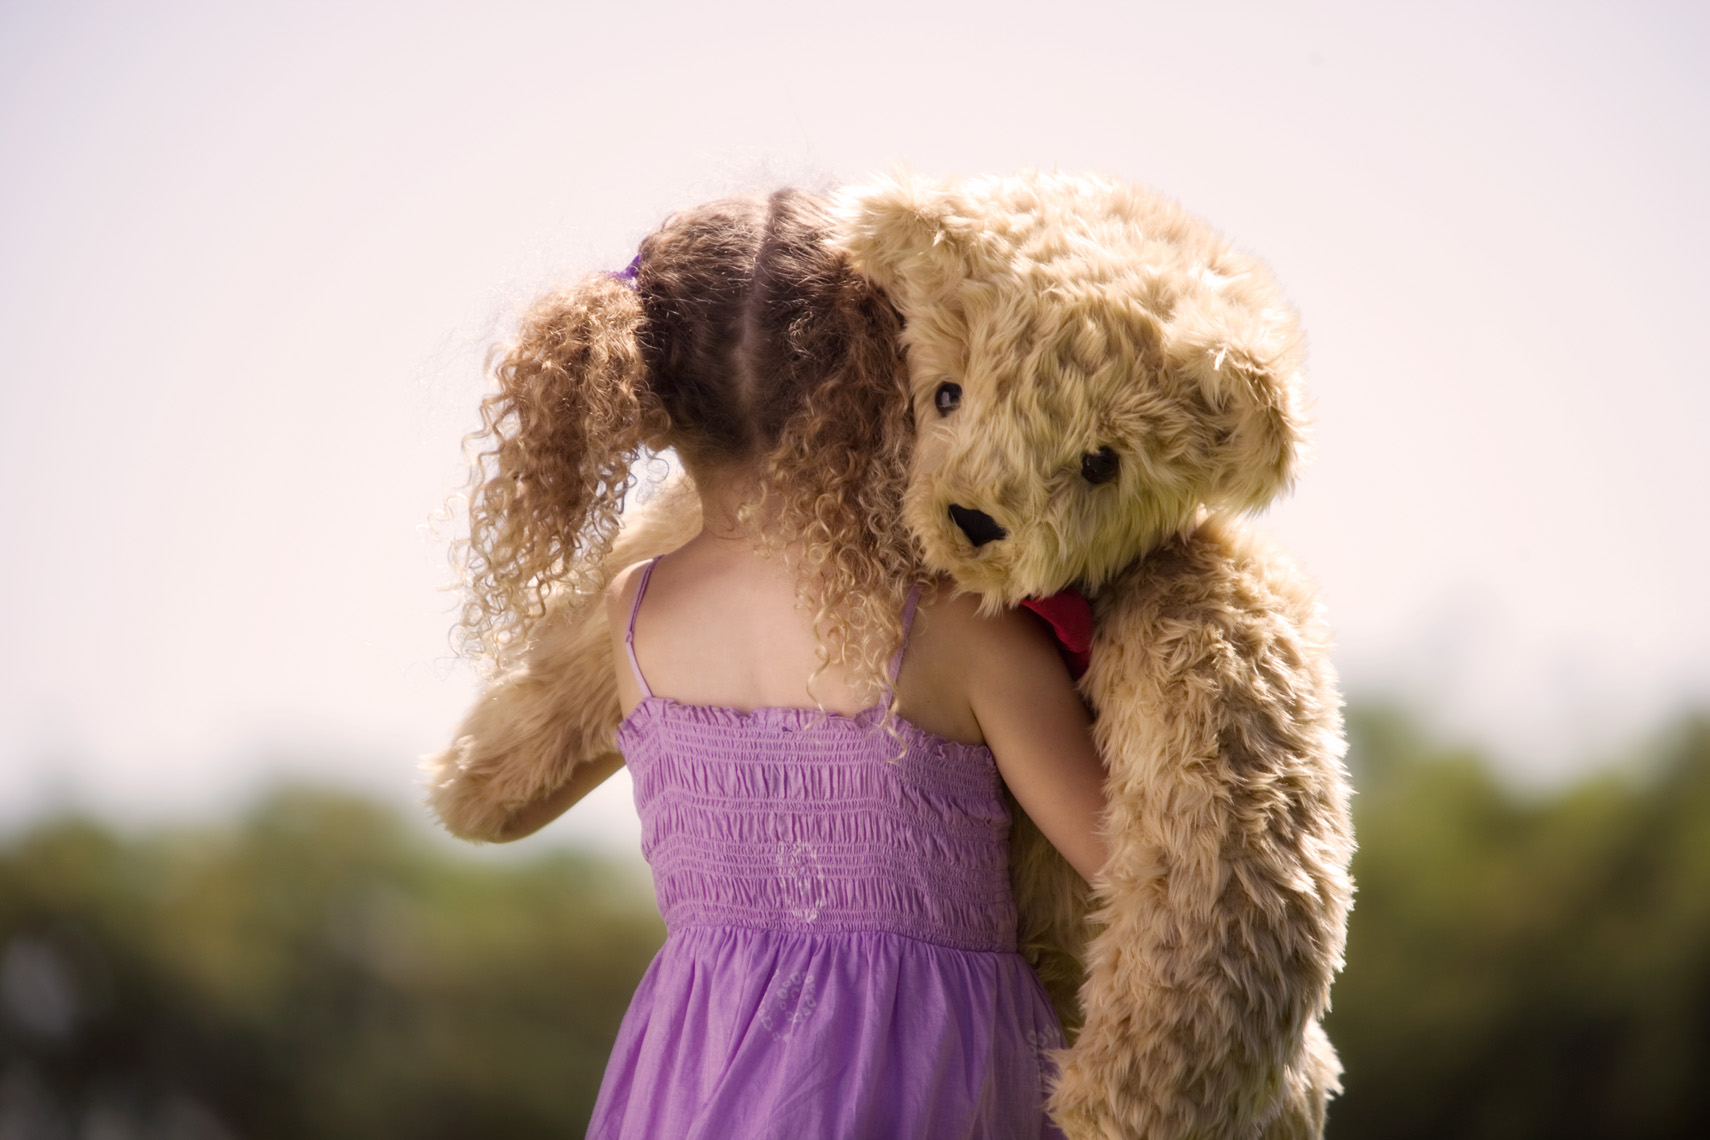 05_Girl with Teddy Bear.jpg